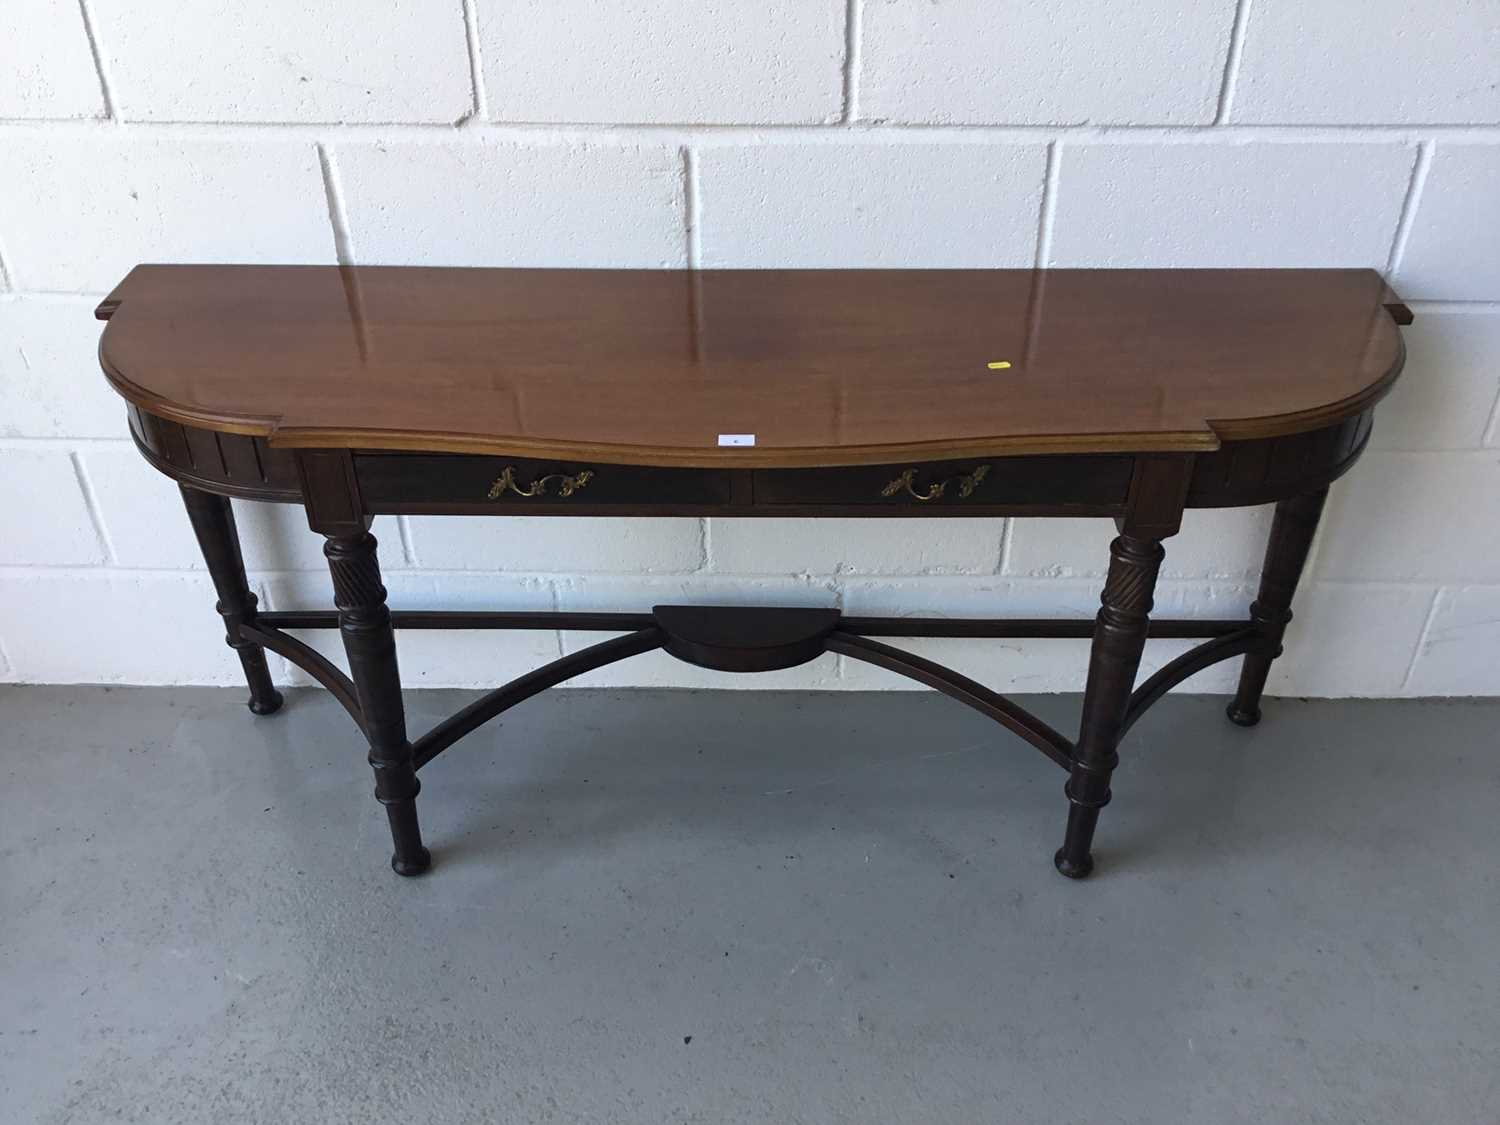 Lot 6-Edwardian Mahogany serpentine fronted console / hall table, two draws below, on turned legs with stretchers, 162cm width, 73cm height, 46cm depth